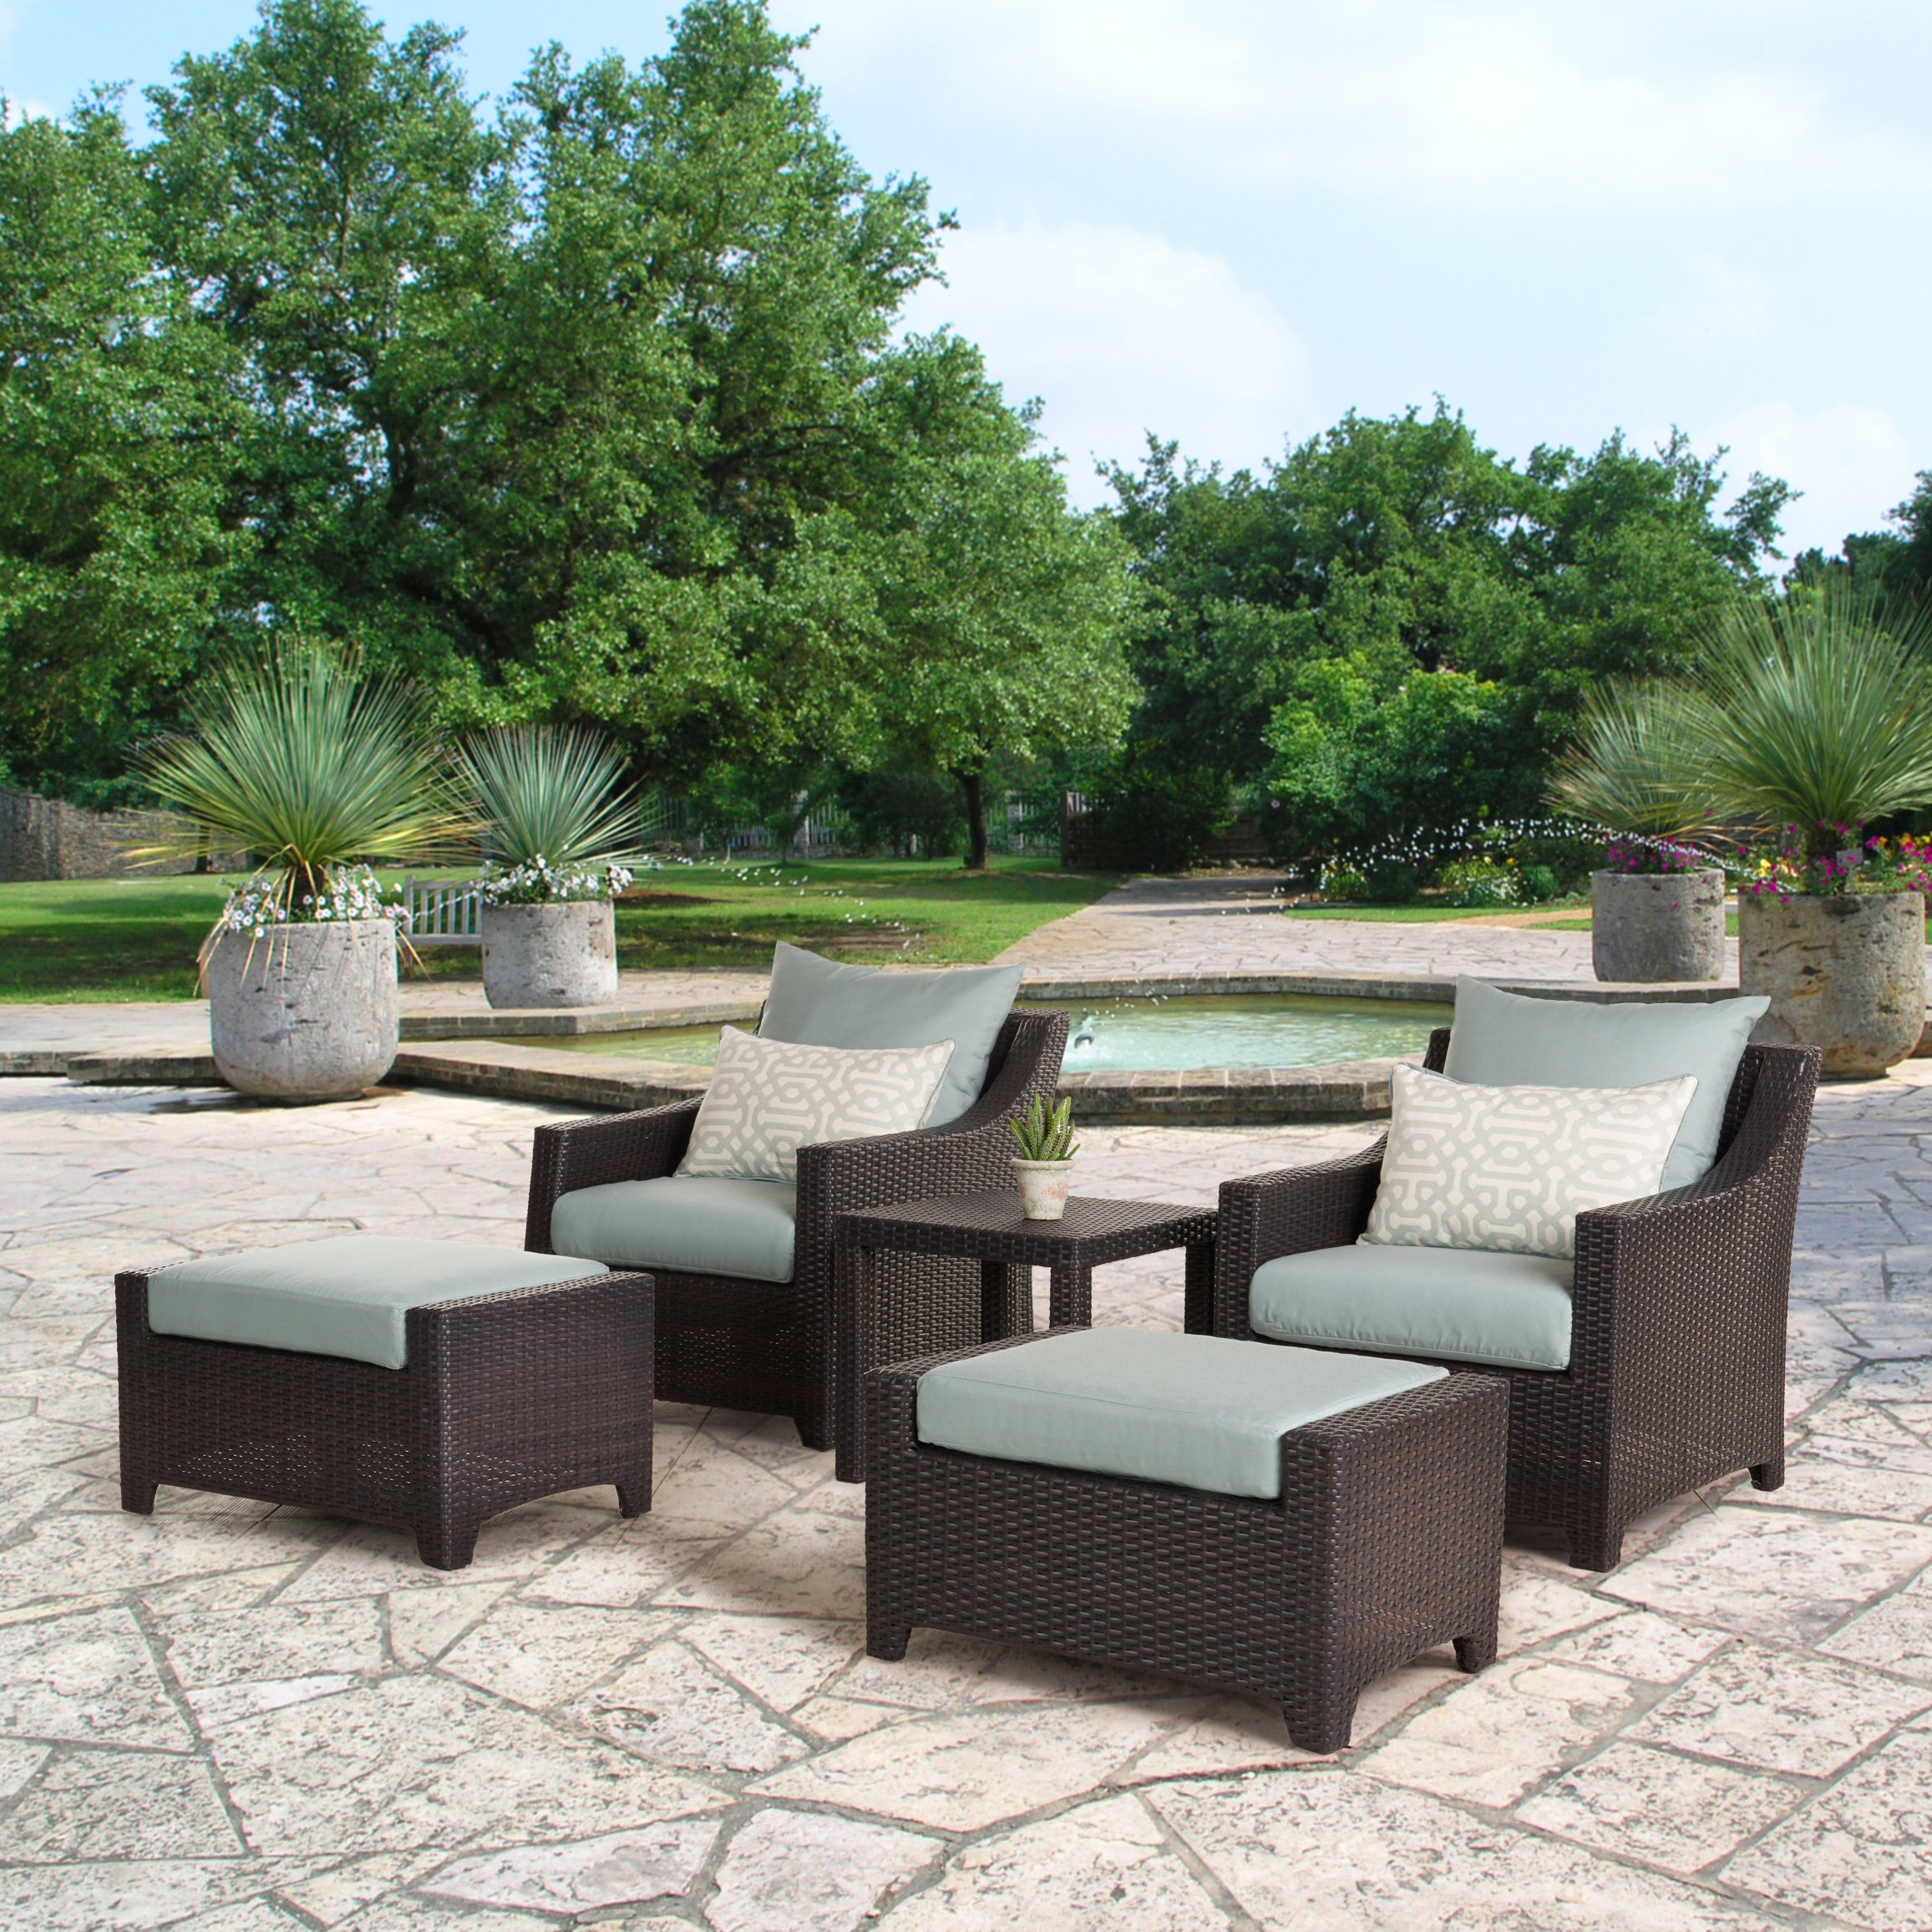 Northridge 5 Piece Conversation Set With Cushions With Regard To Best And Newest Northridge Patio Sofas With Sunbrella Cushions (View 7 of 20)